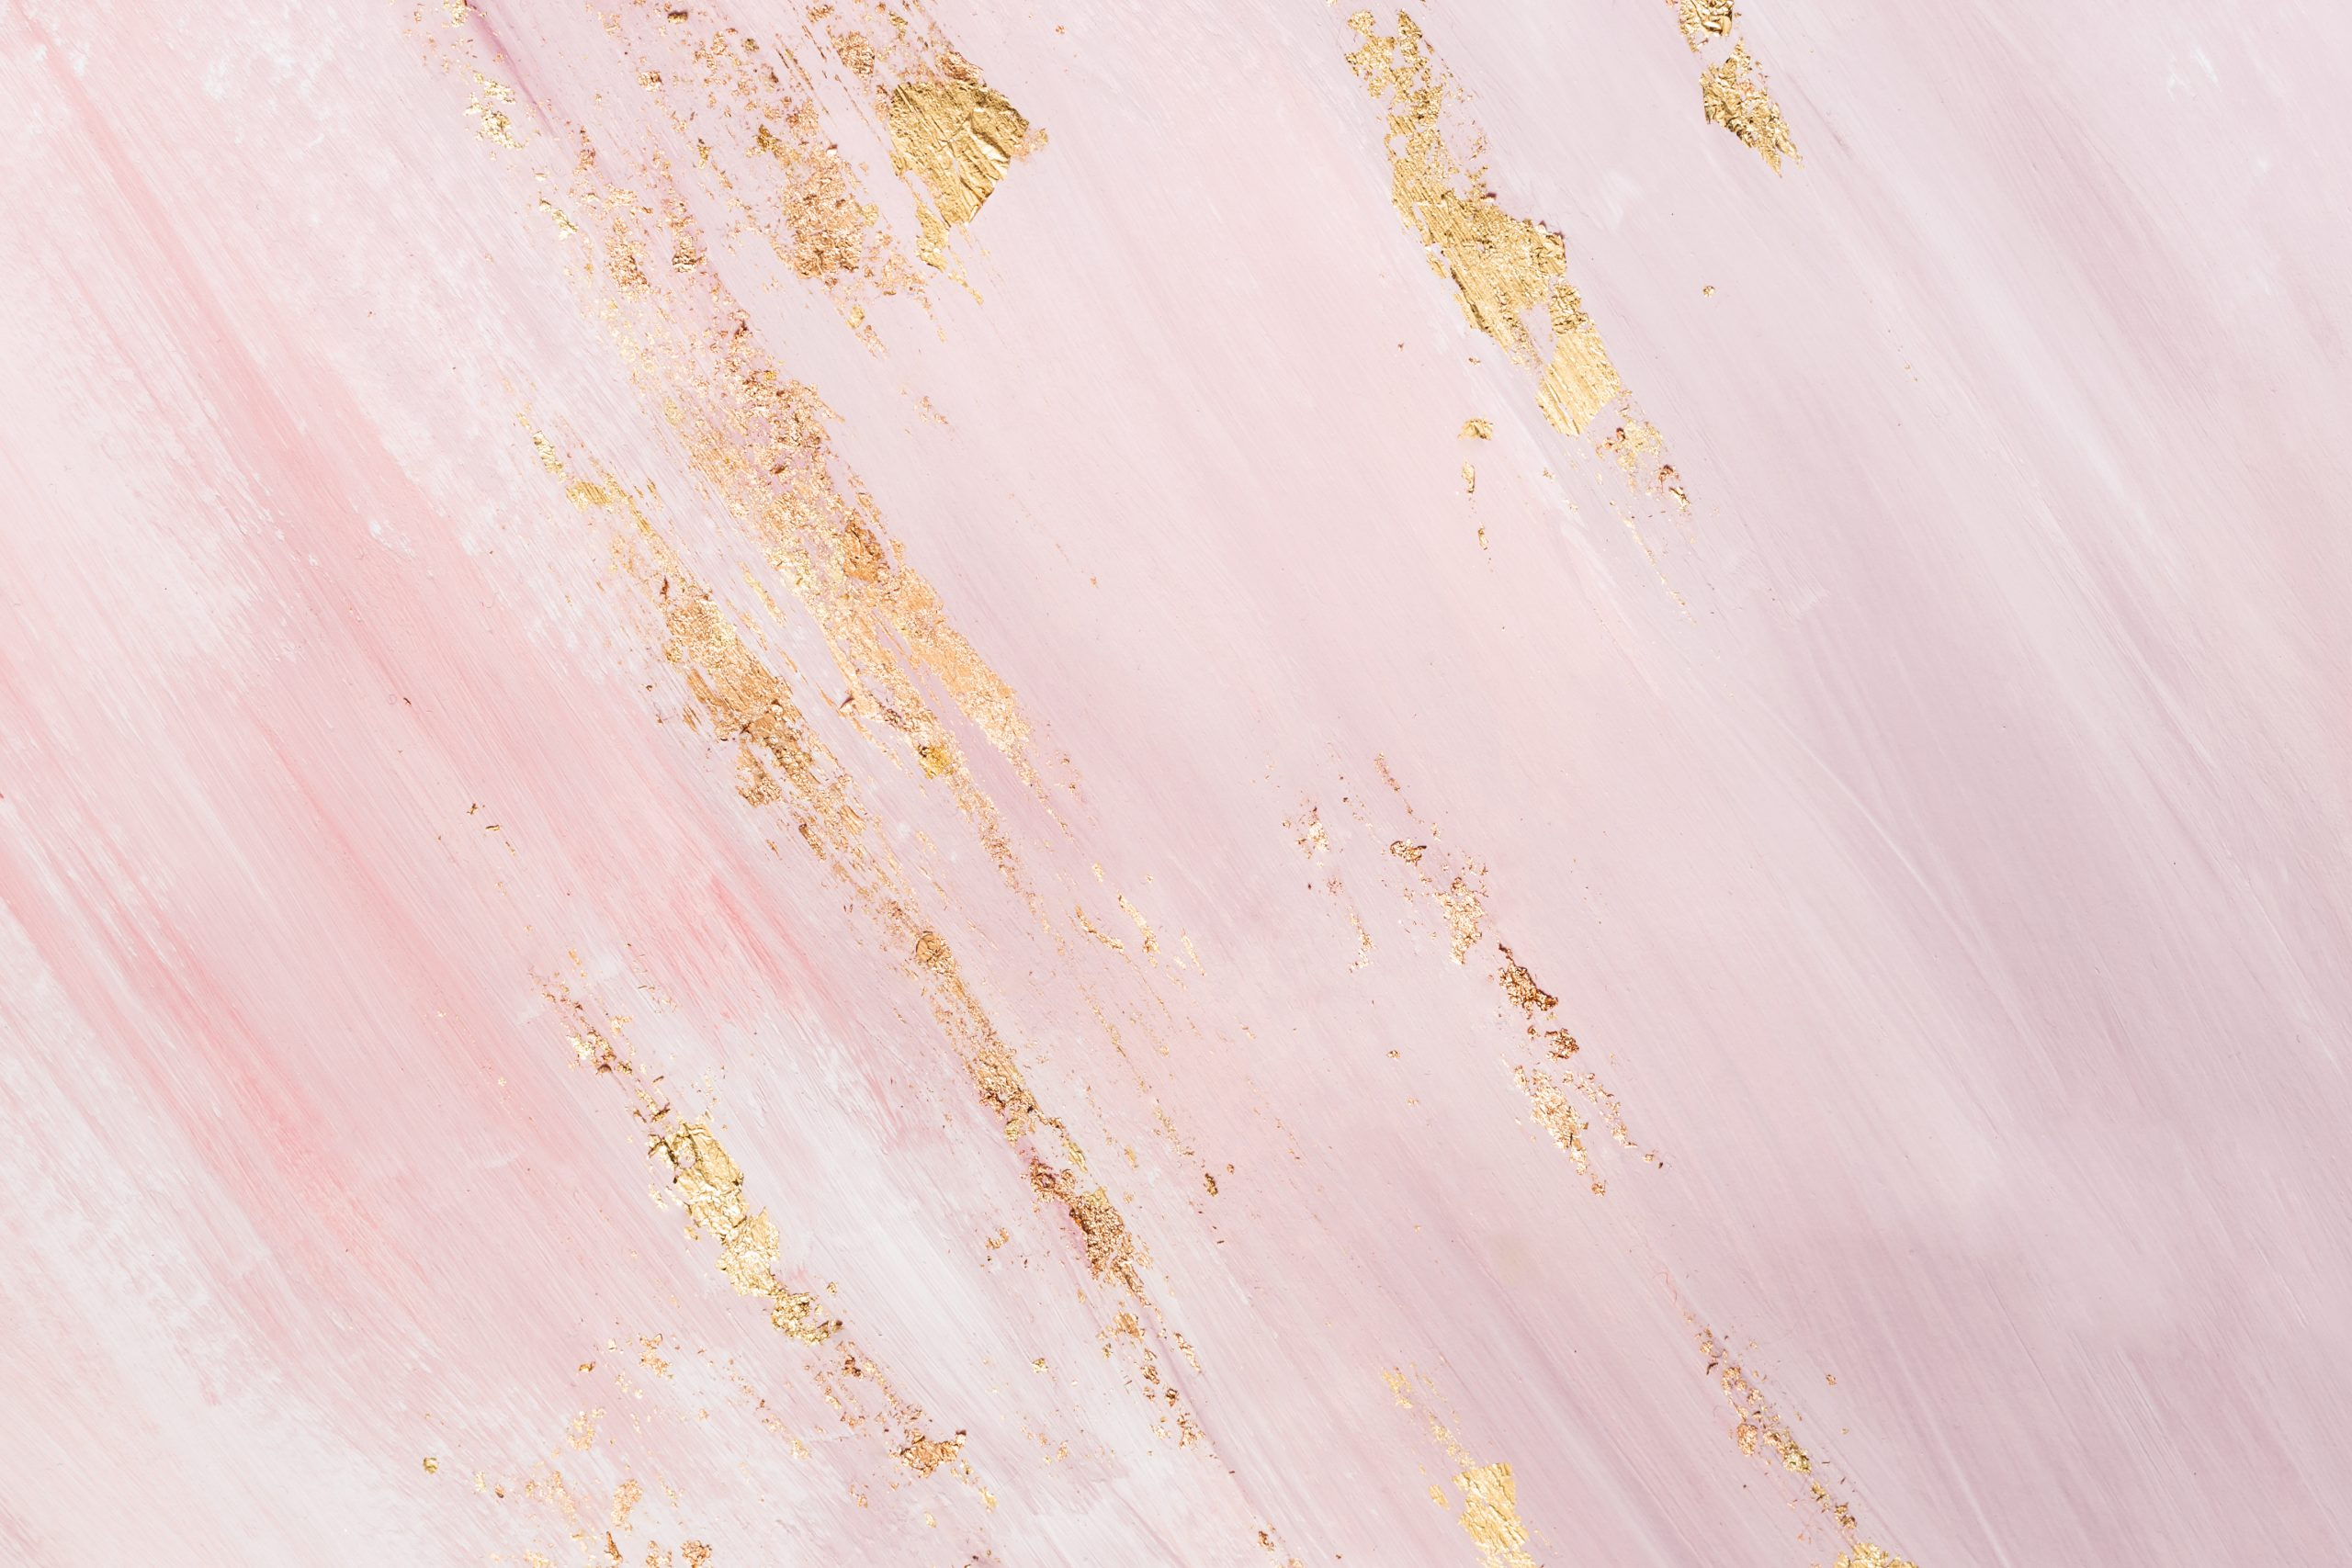 Delicate pink marble background with gold brushstrokes. Place for your design.